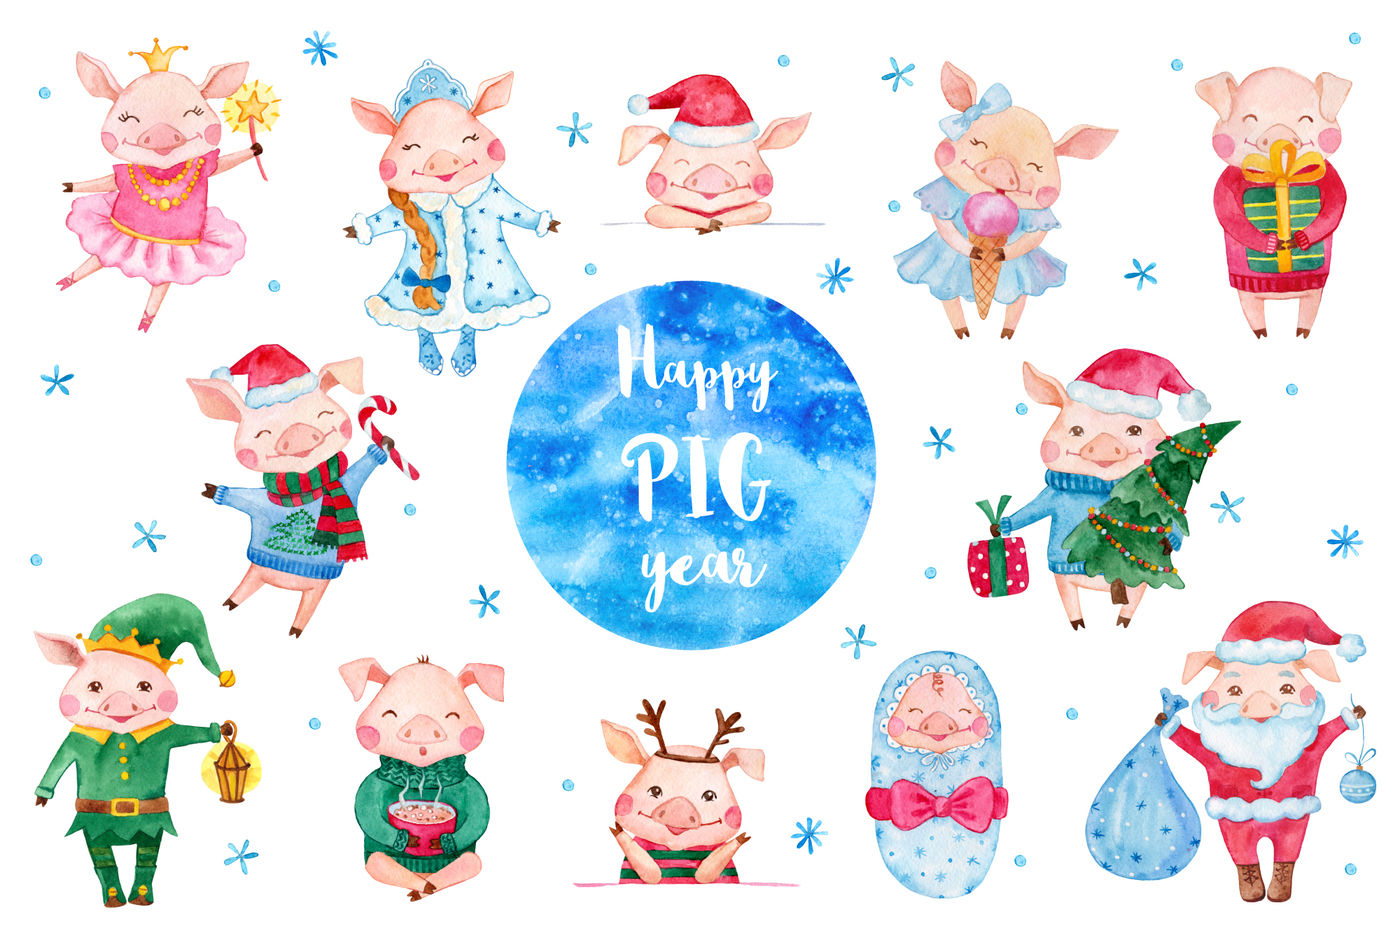 Cute Christmas Watercolor Pigs Collection By Romawka